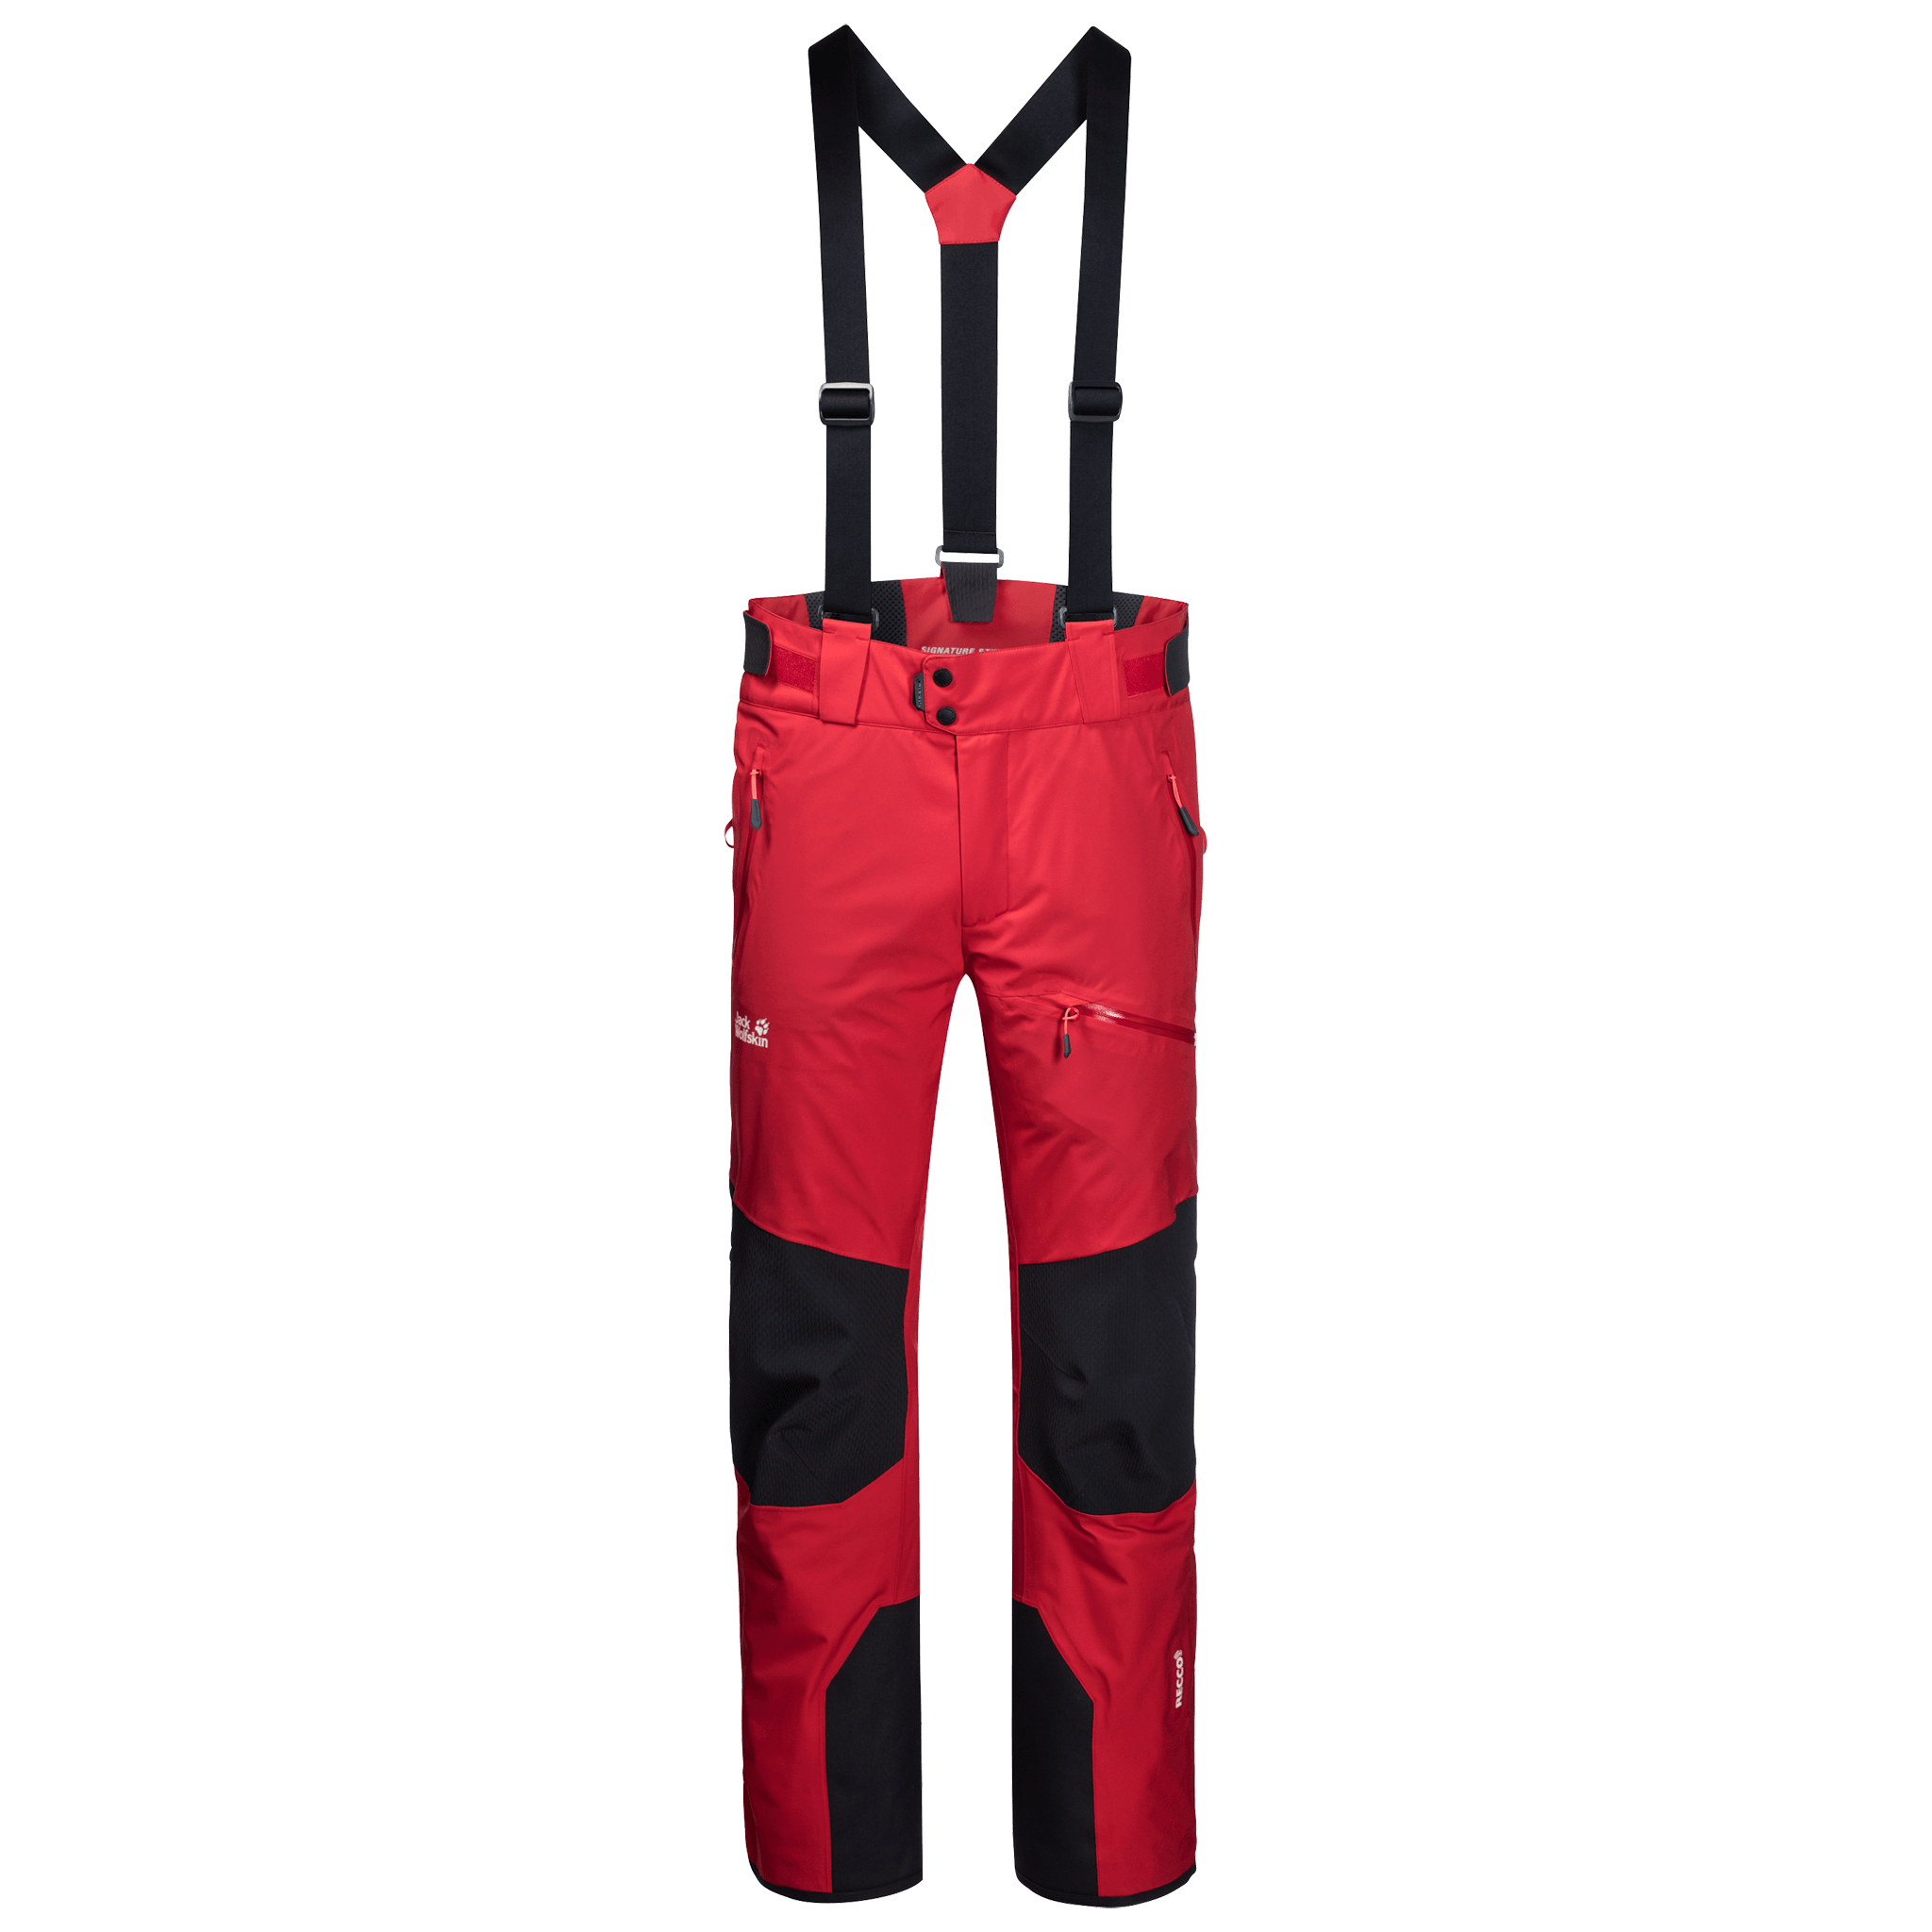 Red Fire Ski Pants Men